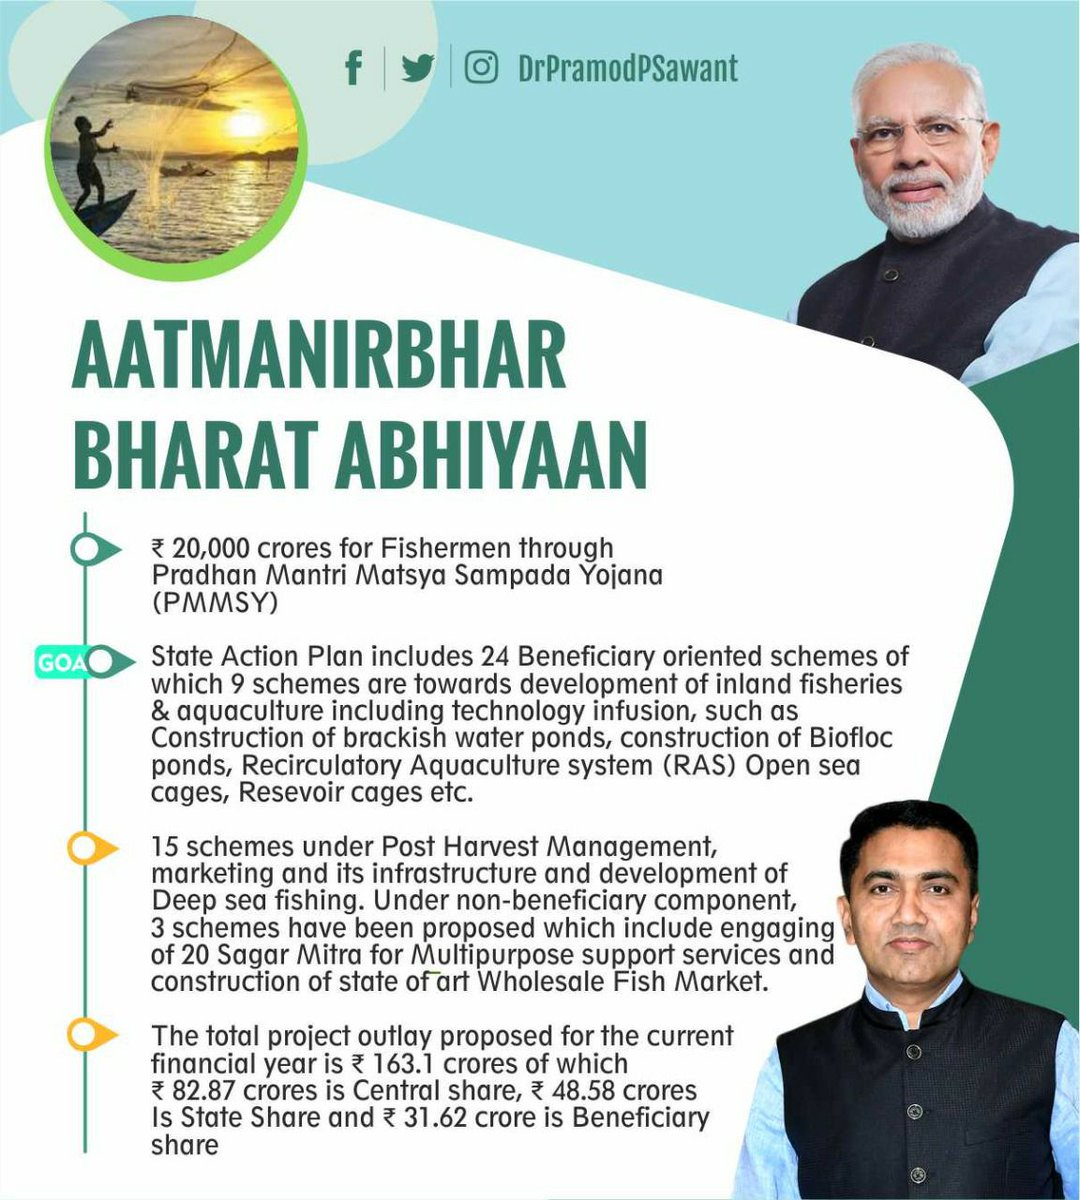 State action plan to provide boost for fish farming in Goa under #AatmaNirbharBharatAbhiyan. https://t.co/Tqxw7J1r5V